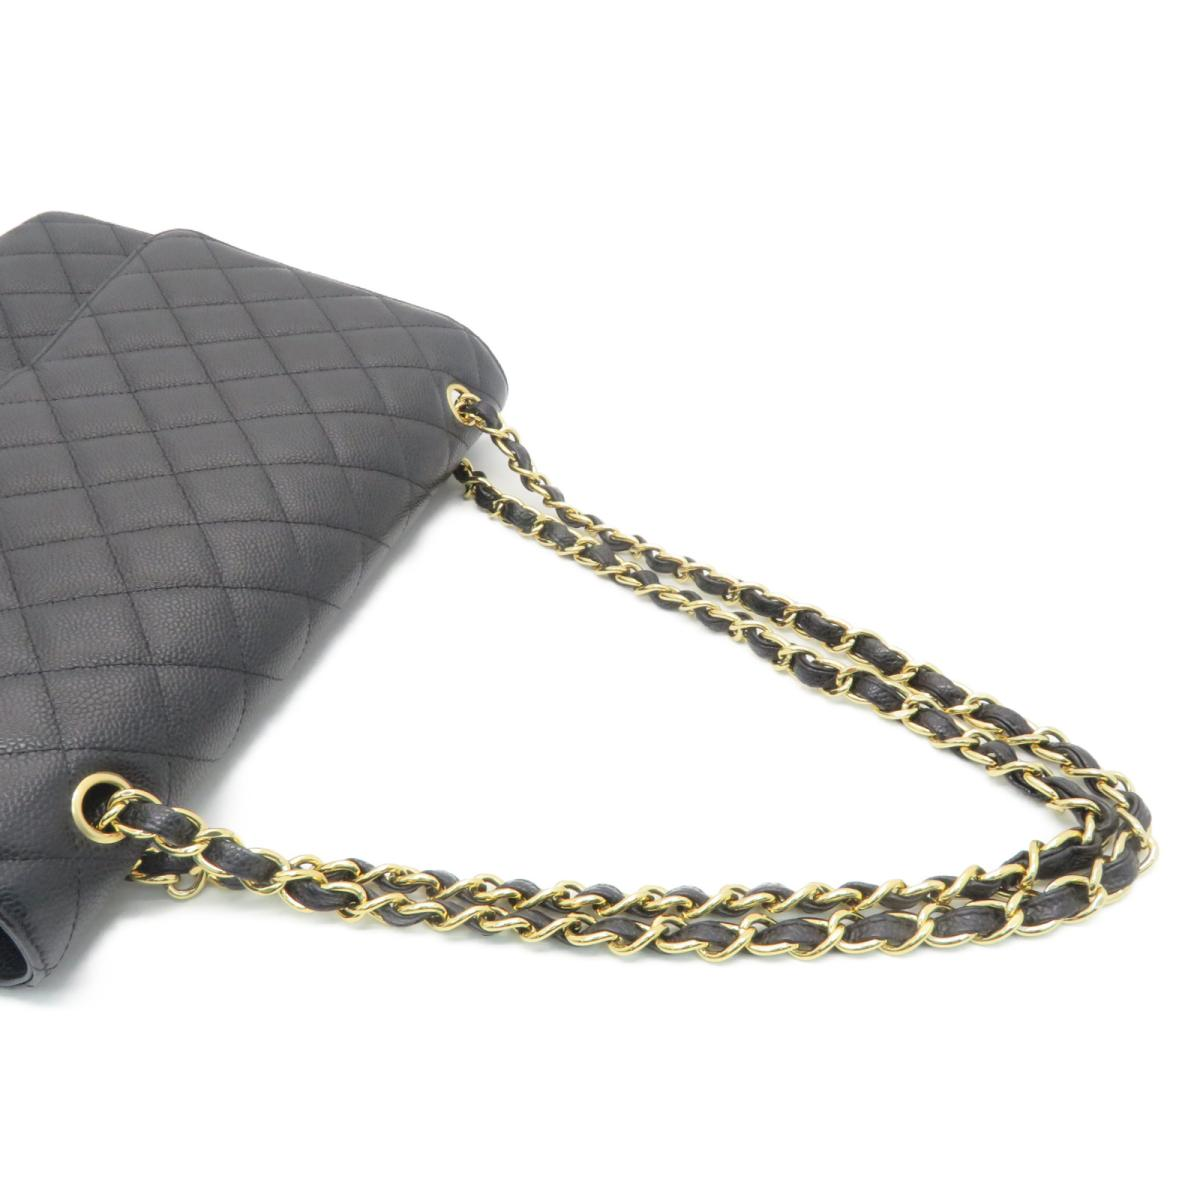 Chanel Maxi Classic Bag - Iconics Preloved Luxury